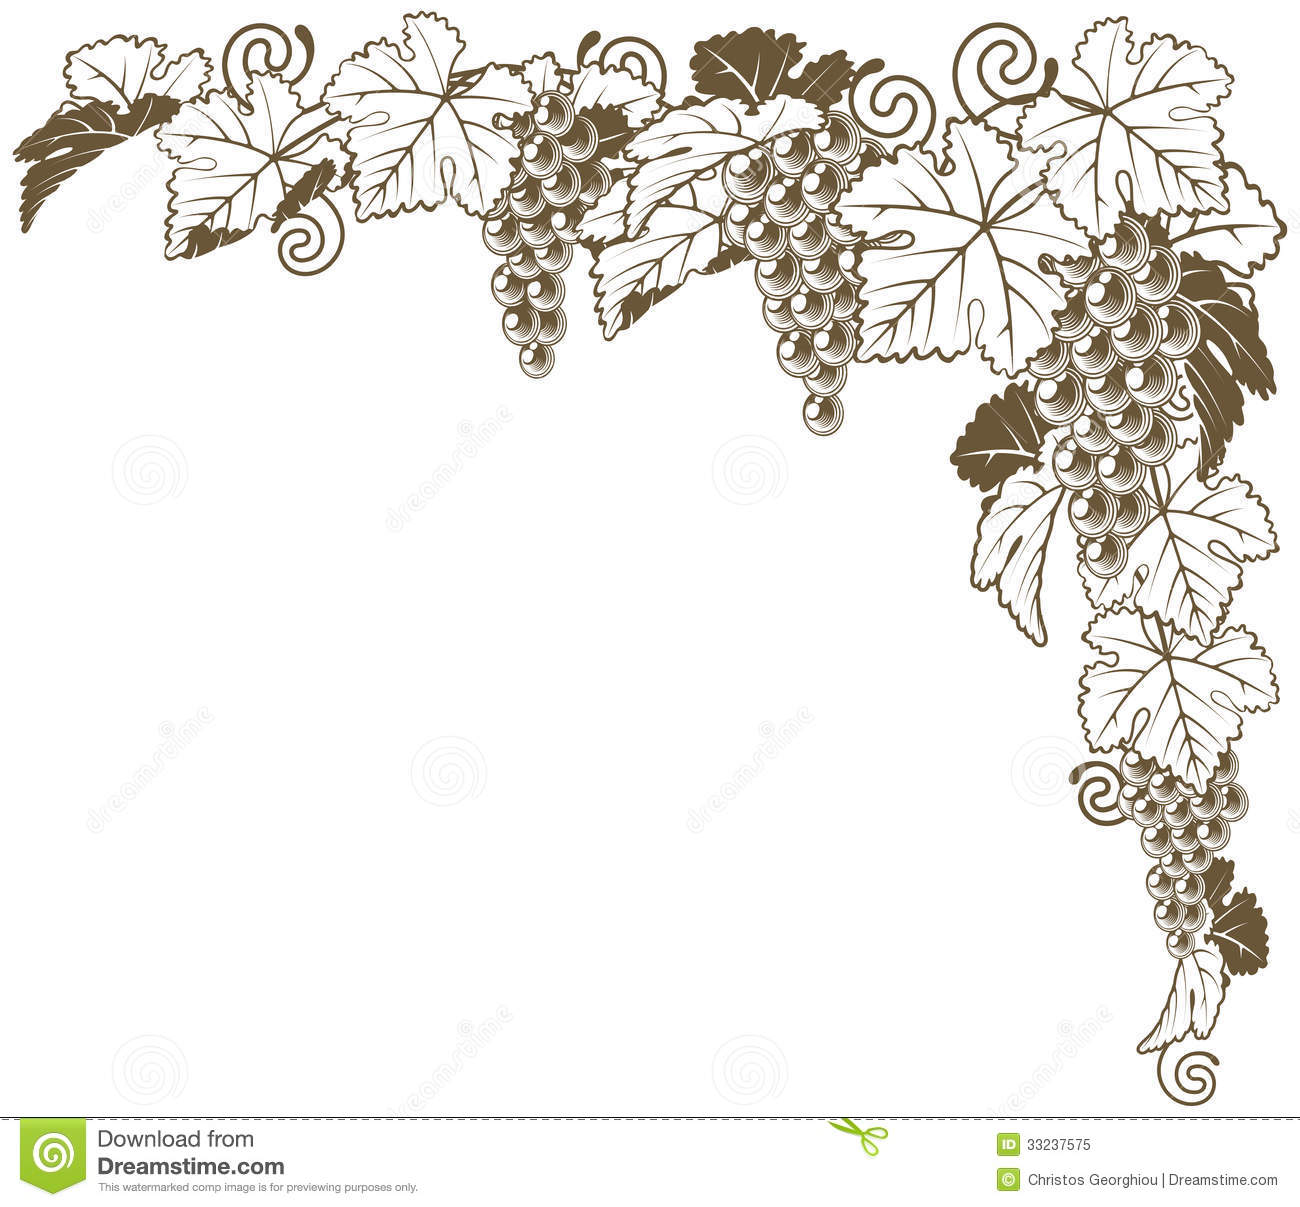 Grape Vine Corner Ornament Royalty Free Stock Photo - Image: 33237575 Vintage Border Vector